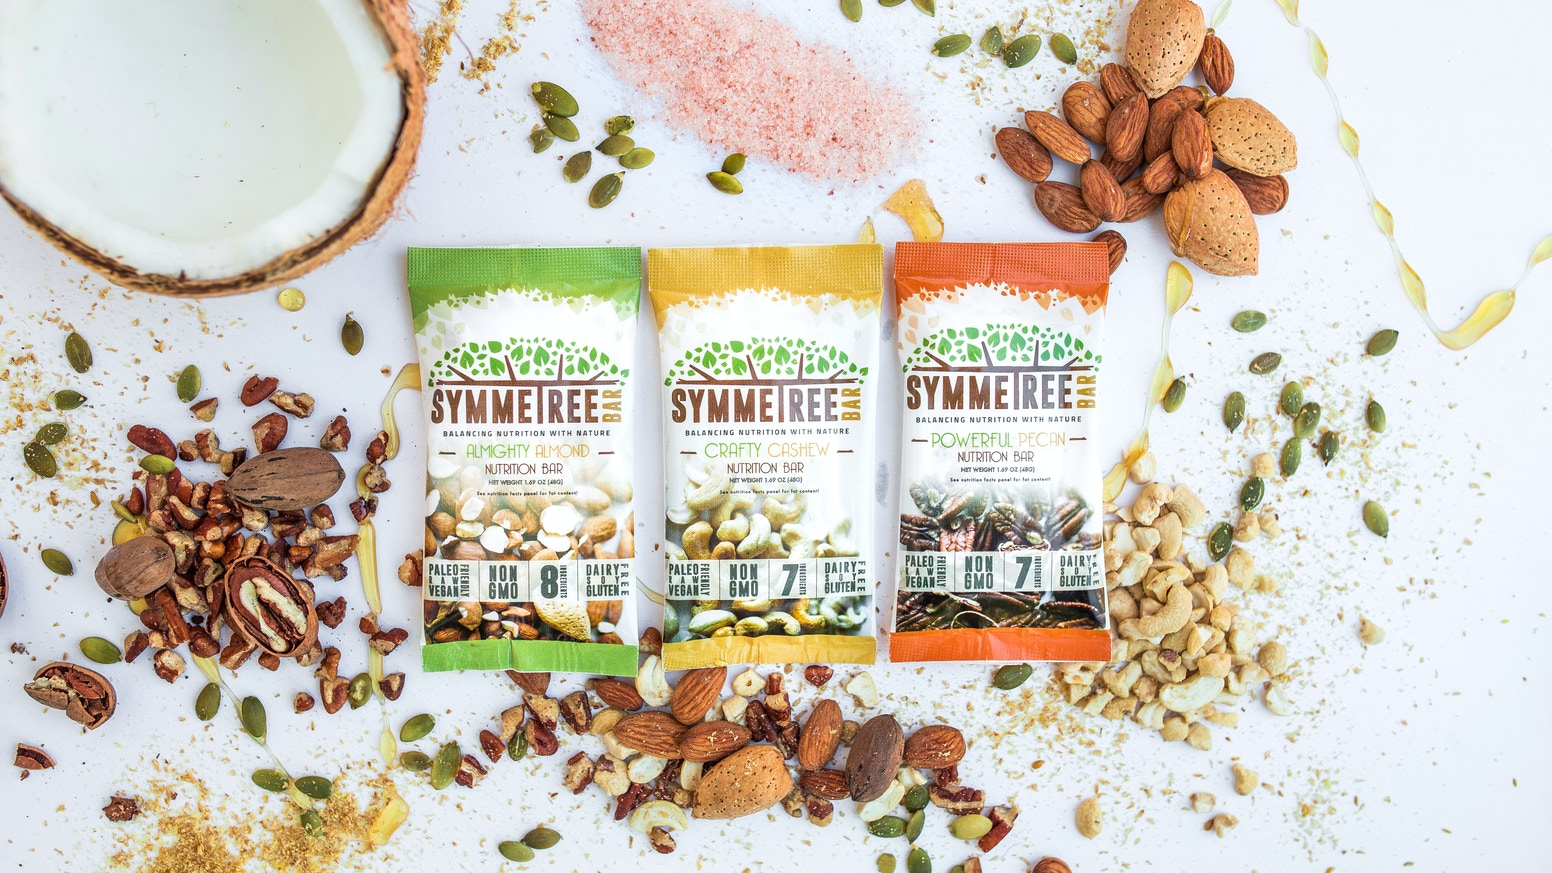 Symmetree bar balancing nutrition with nature by for Food s bar unloc